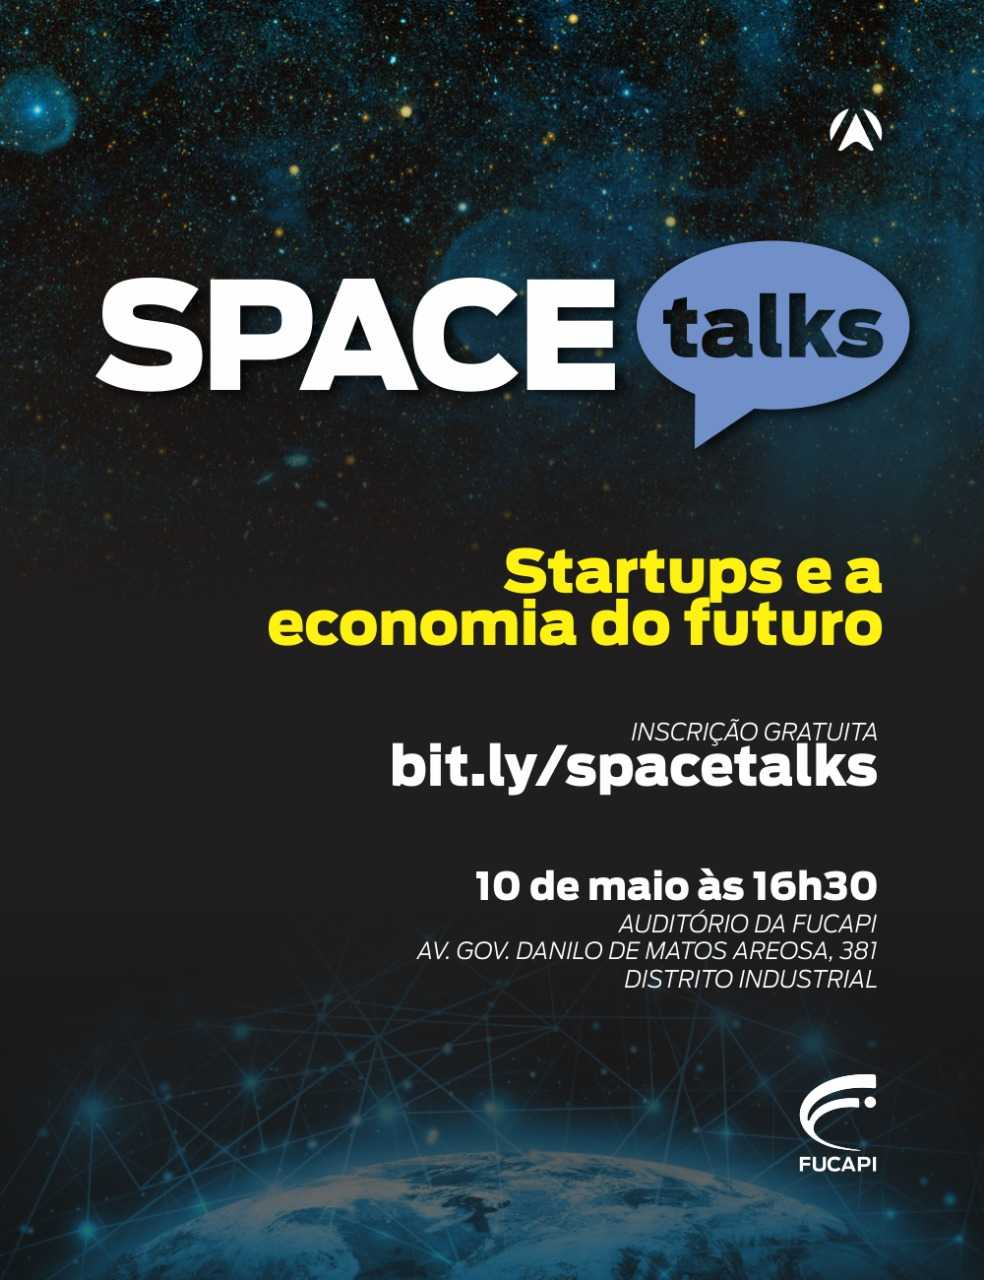 Space Talks - Startups e a economia do futuro